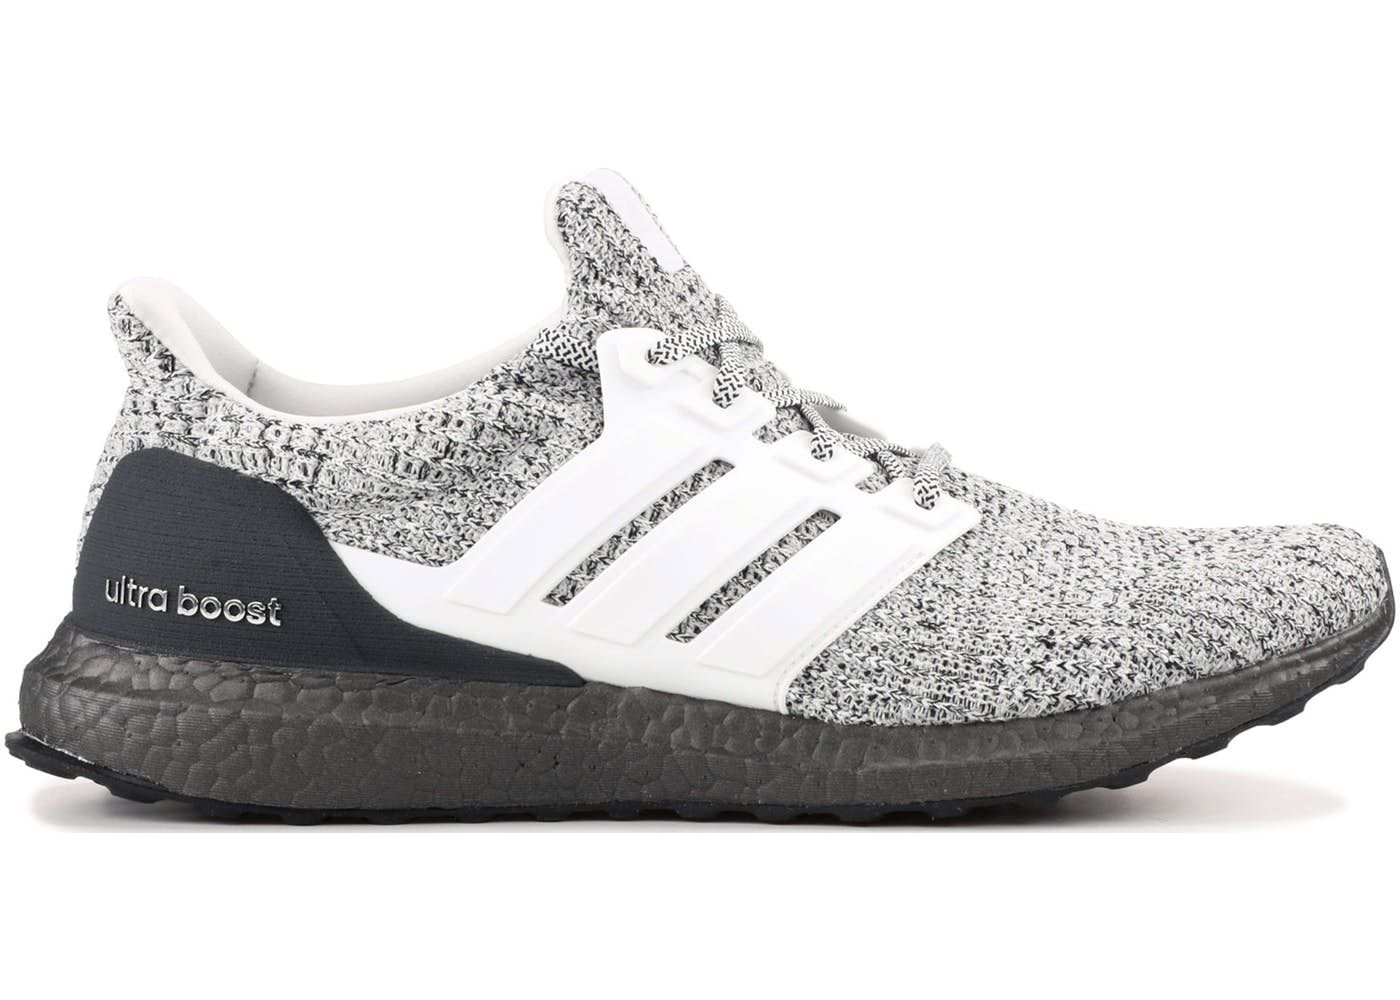 Adidas Ultra Boost 4.0 Oreo Cookies and Cream BB6180 Men's